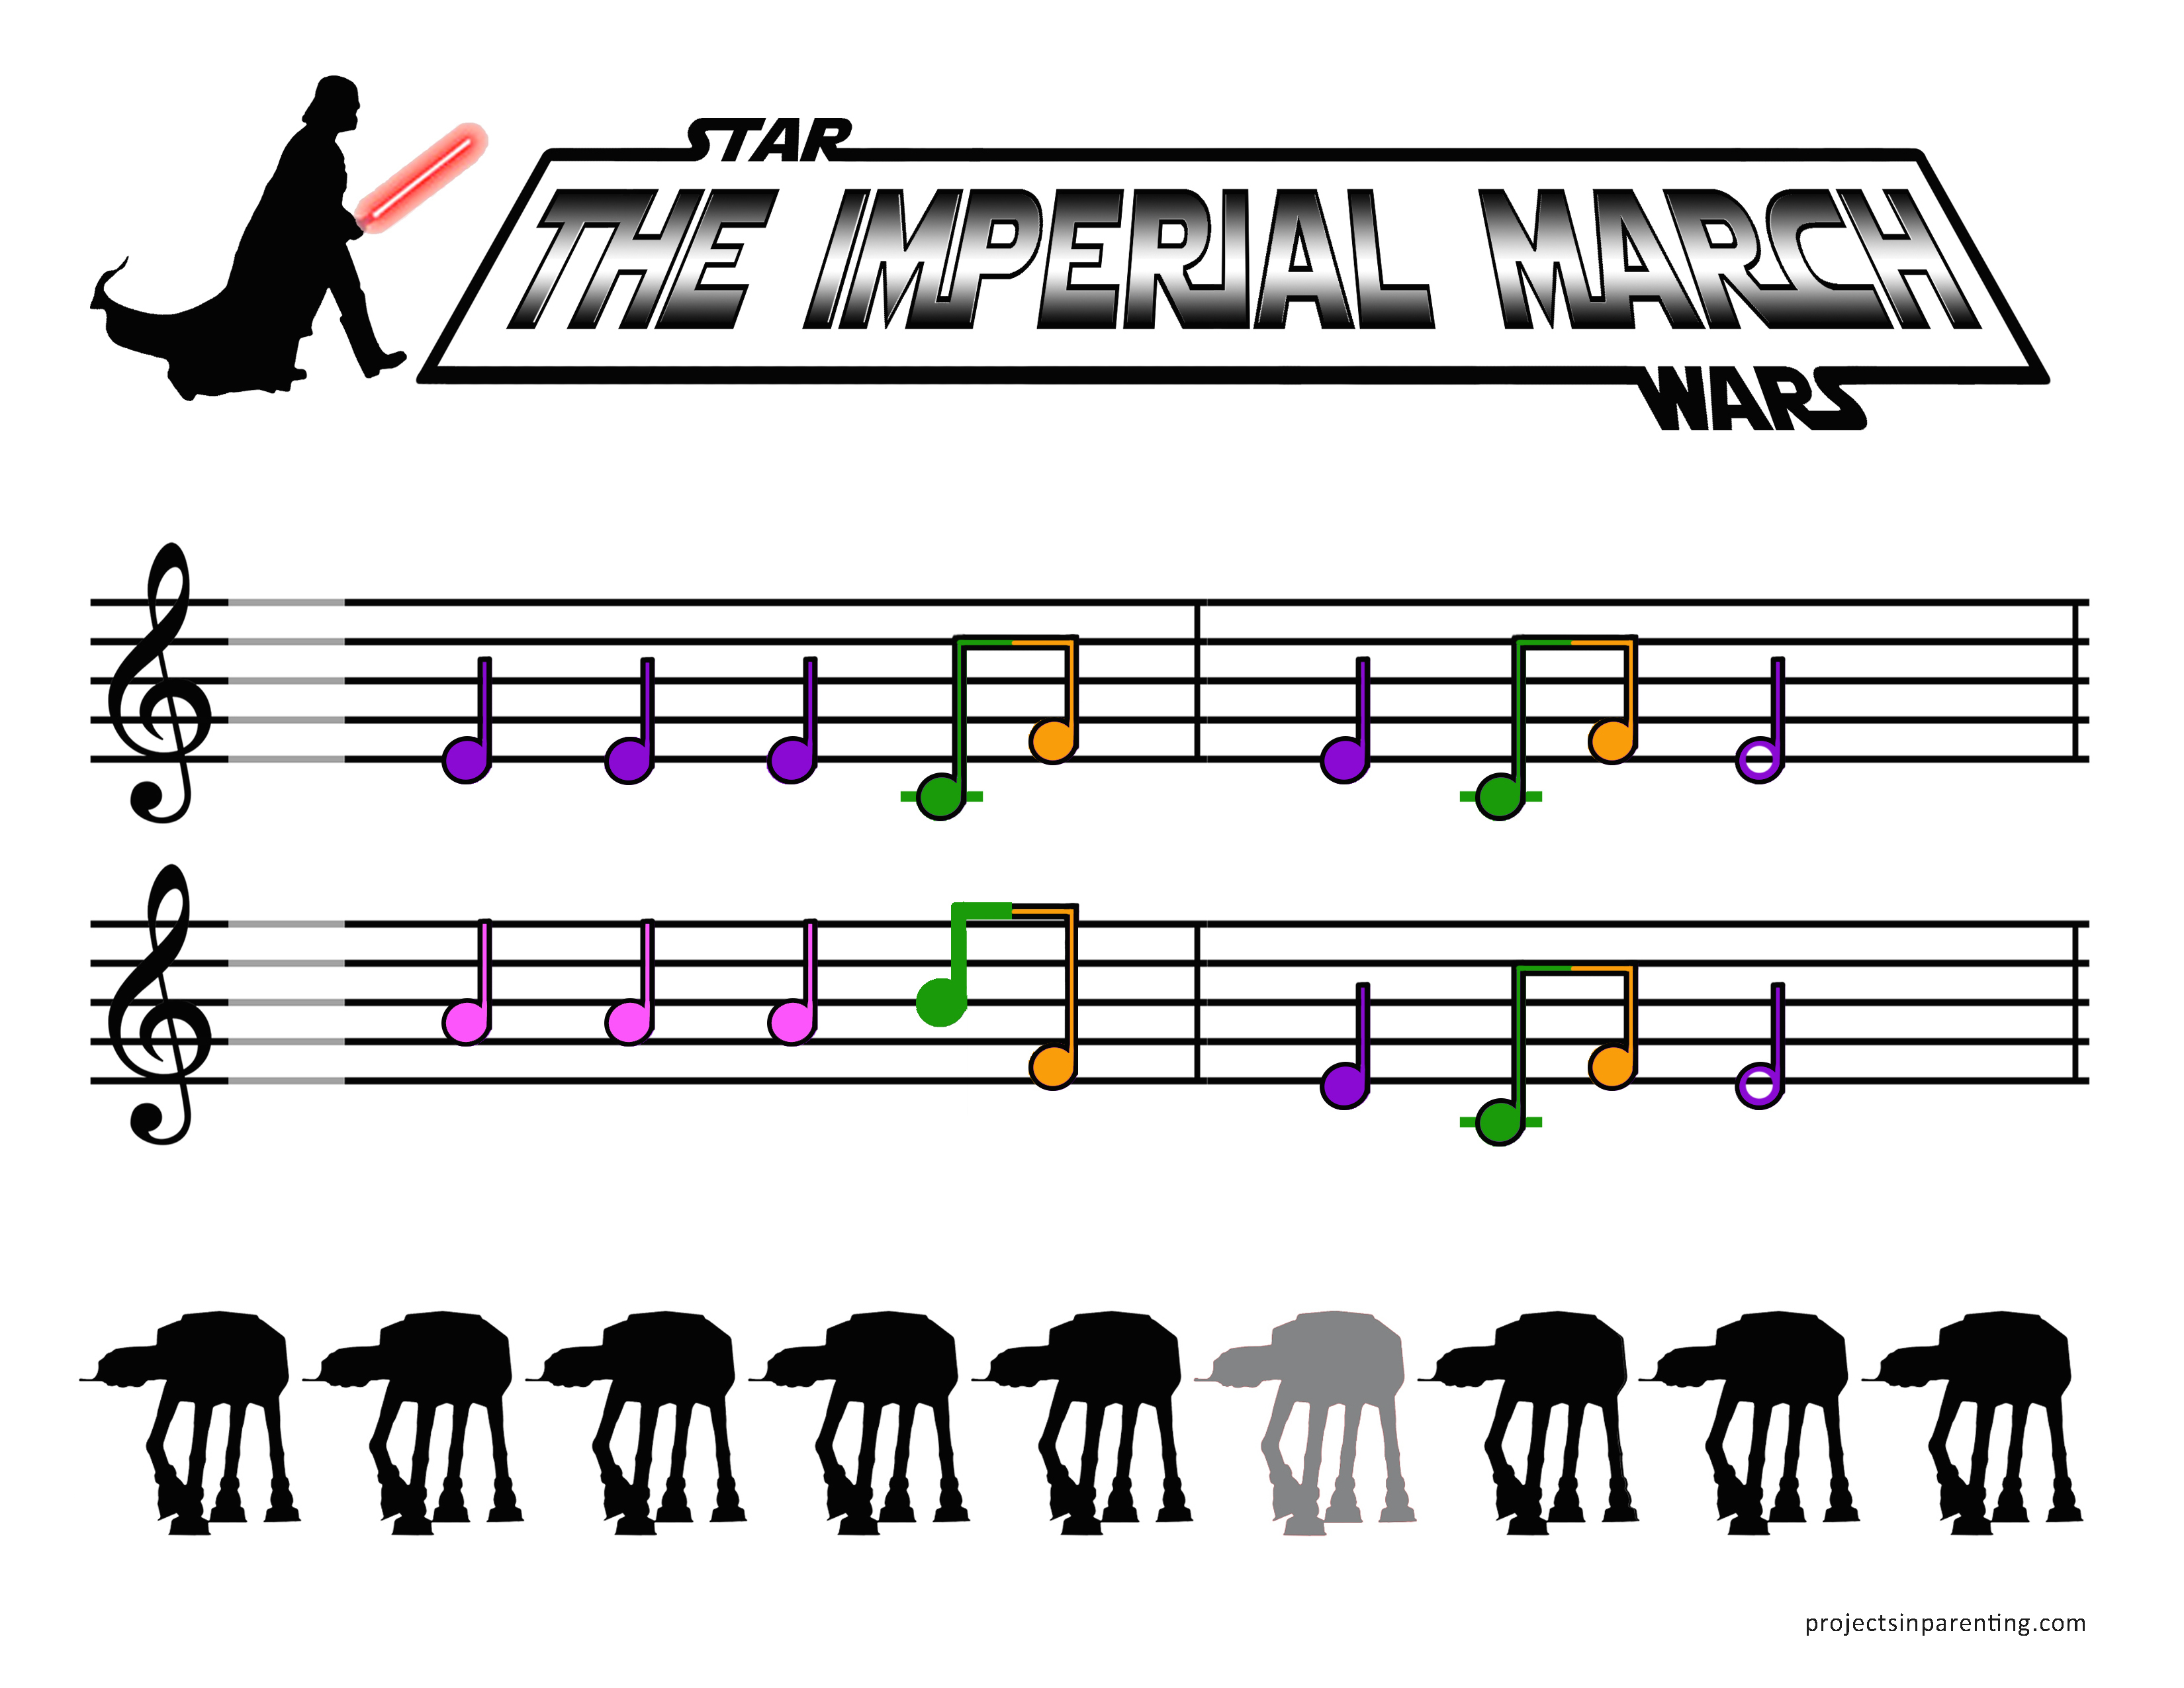 Star Wars - The Imperial March Color-Coded Beginner Piano Sheet Music - projectsinparenting.com